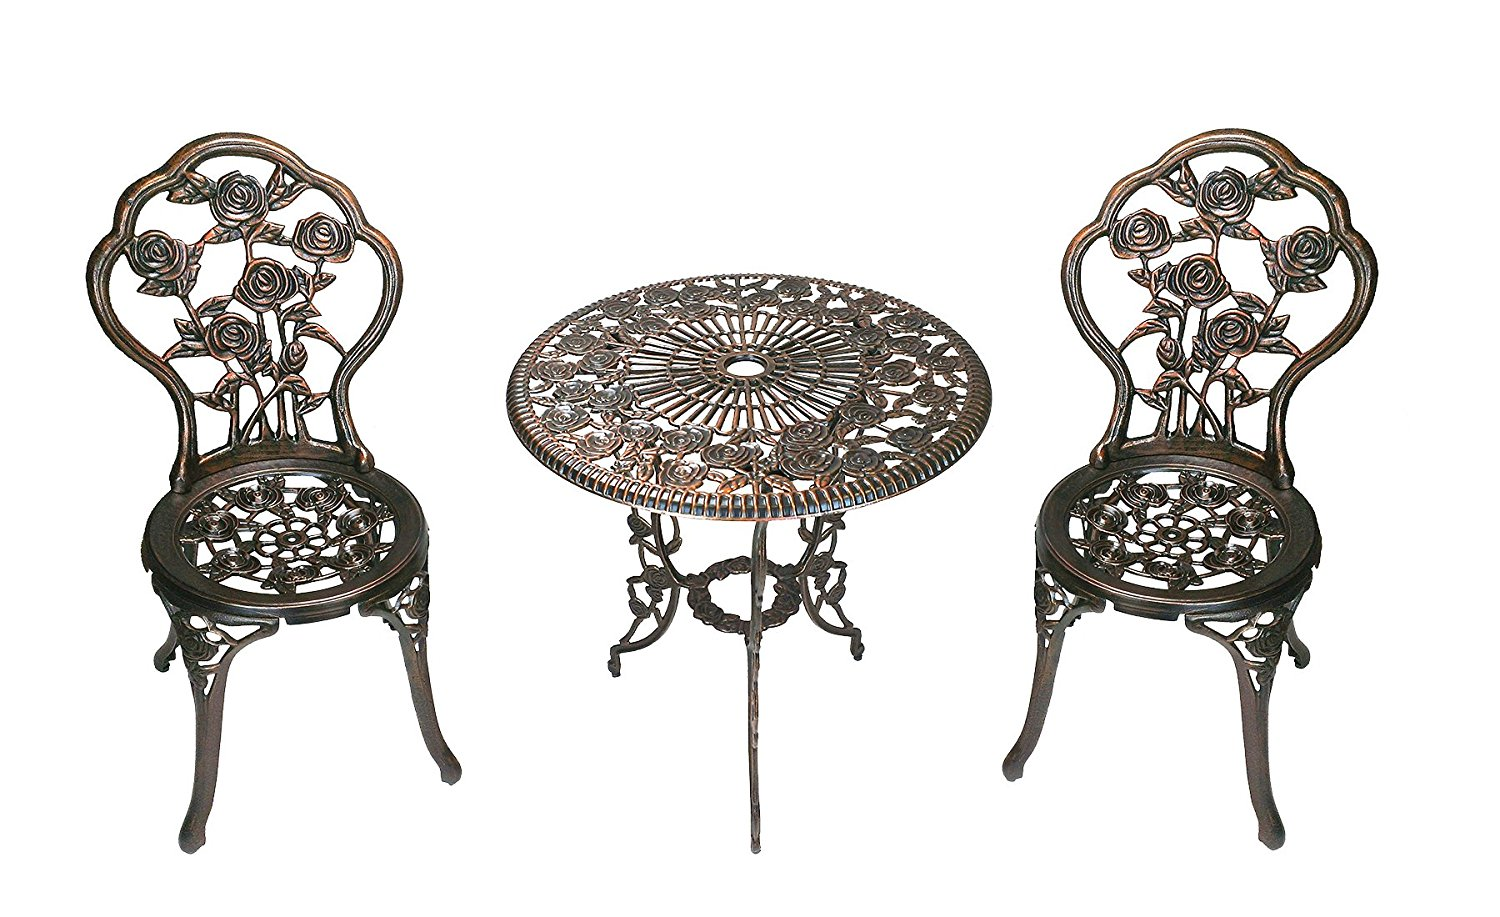 Wrought Iron 3 Piece Outdoor Setting Wrought Iron Patio Furniture For Home Backyard Cool